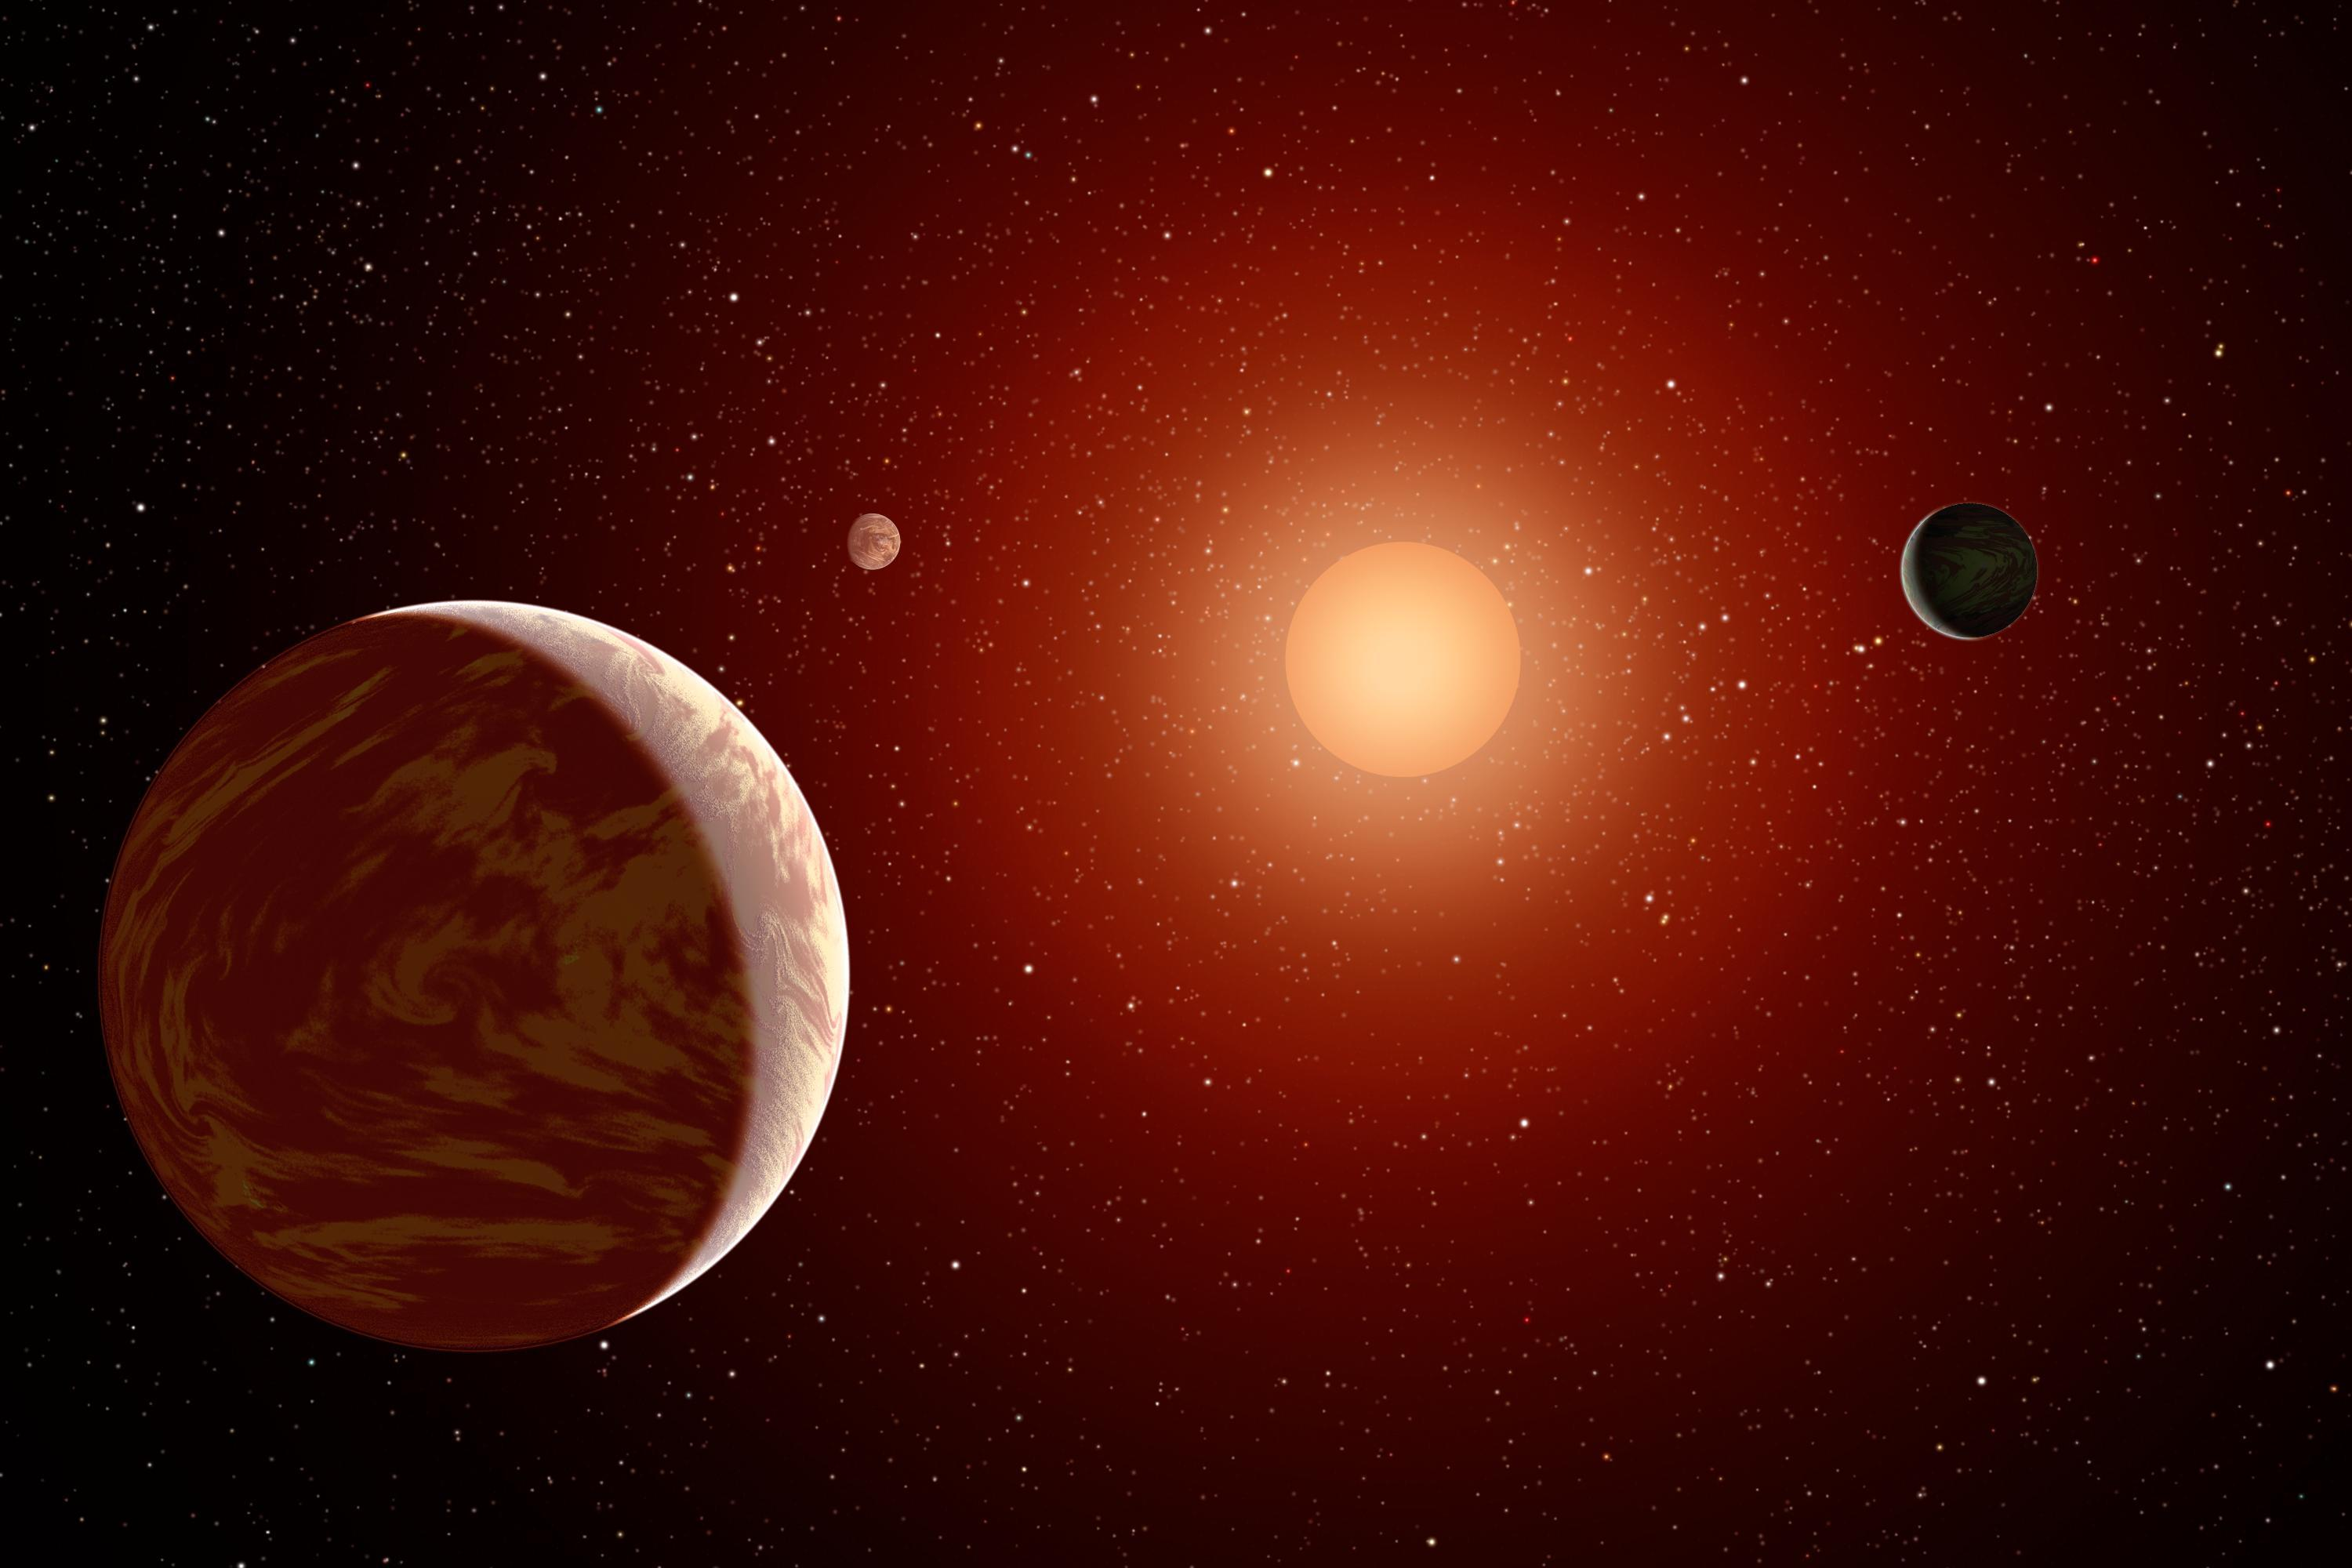 Artist rendering of 3 planets circling a red dwarf (EPIC system not pictured) (Credit: NASA/JPL-Caltech)